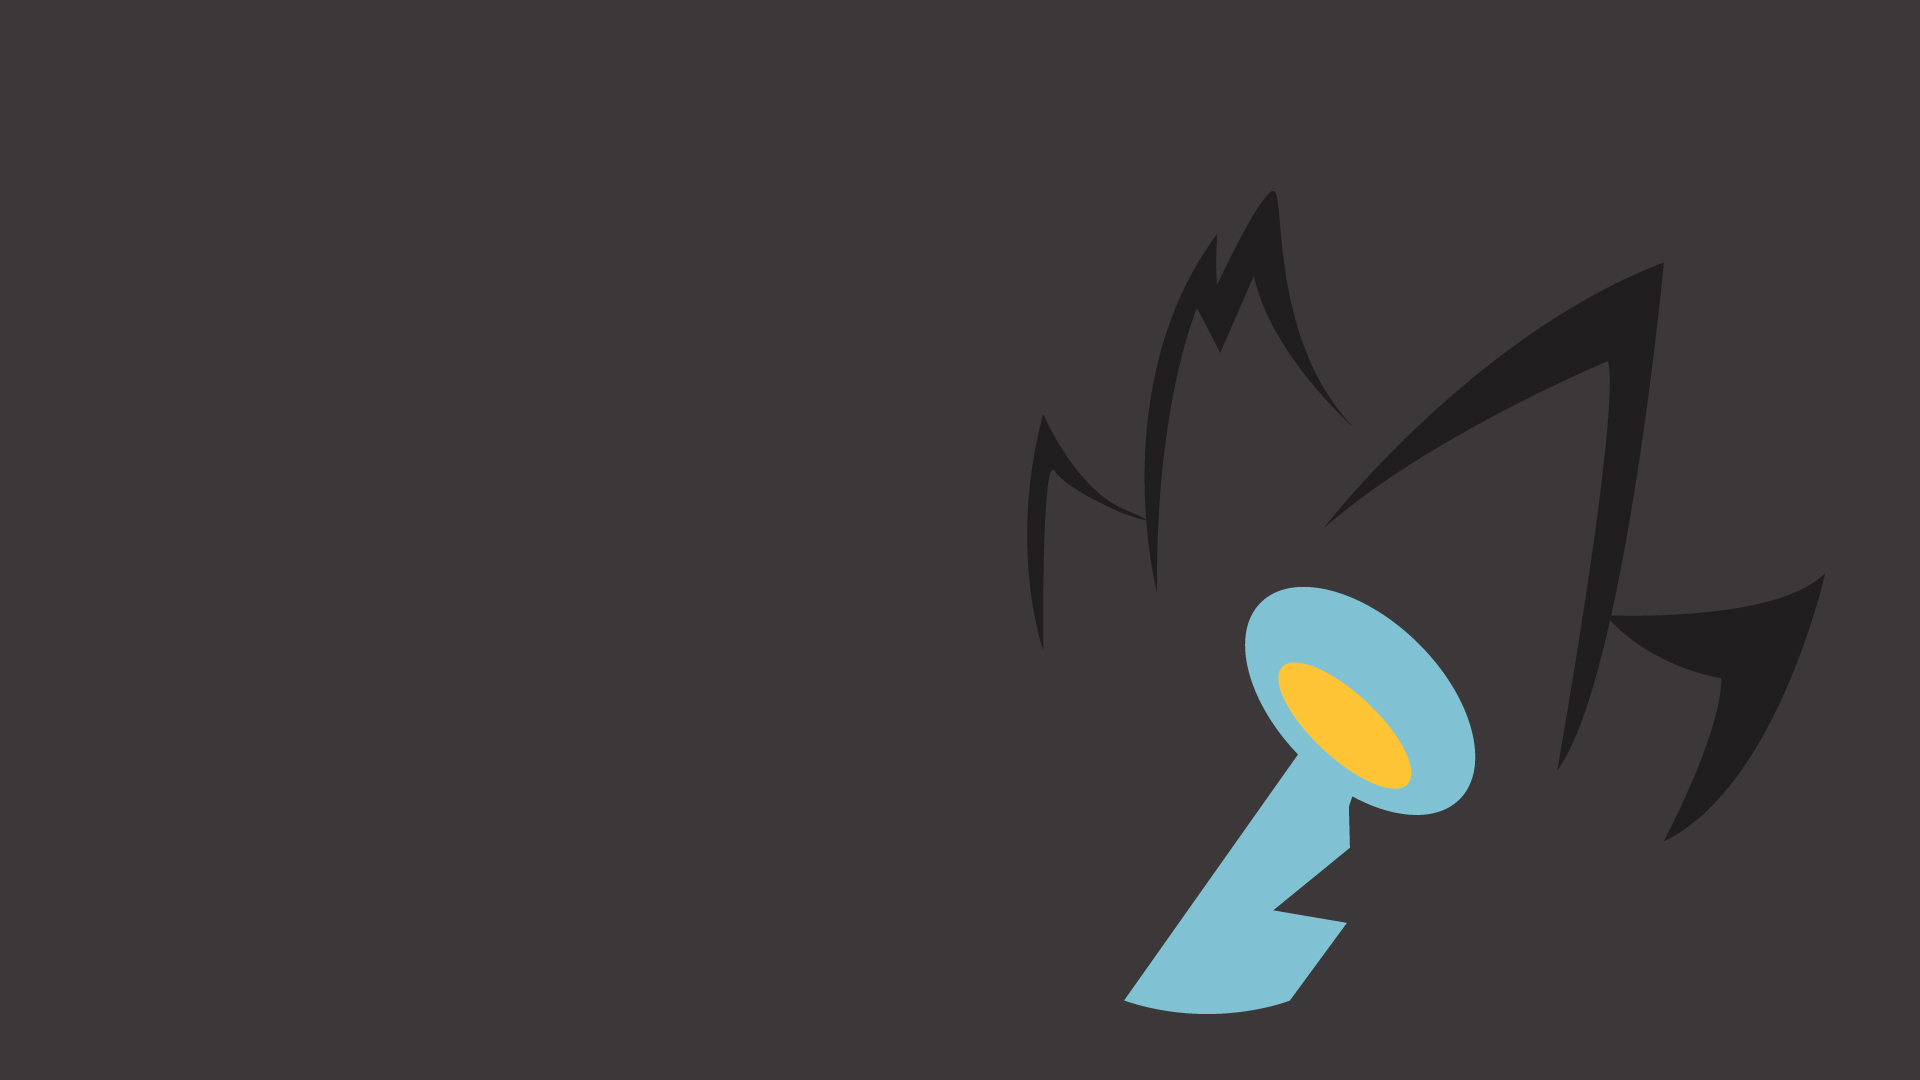 Luxray Wallpaper Images &amp Pictures  Becuo